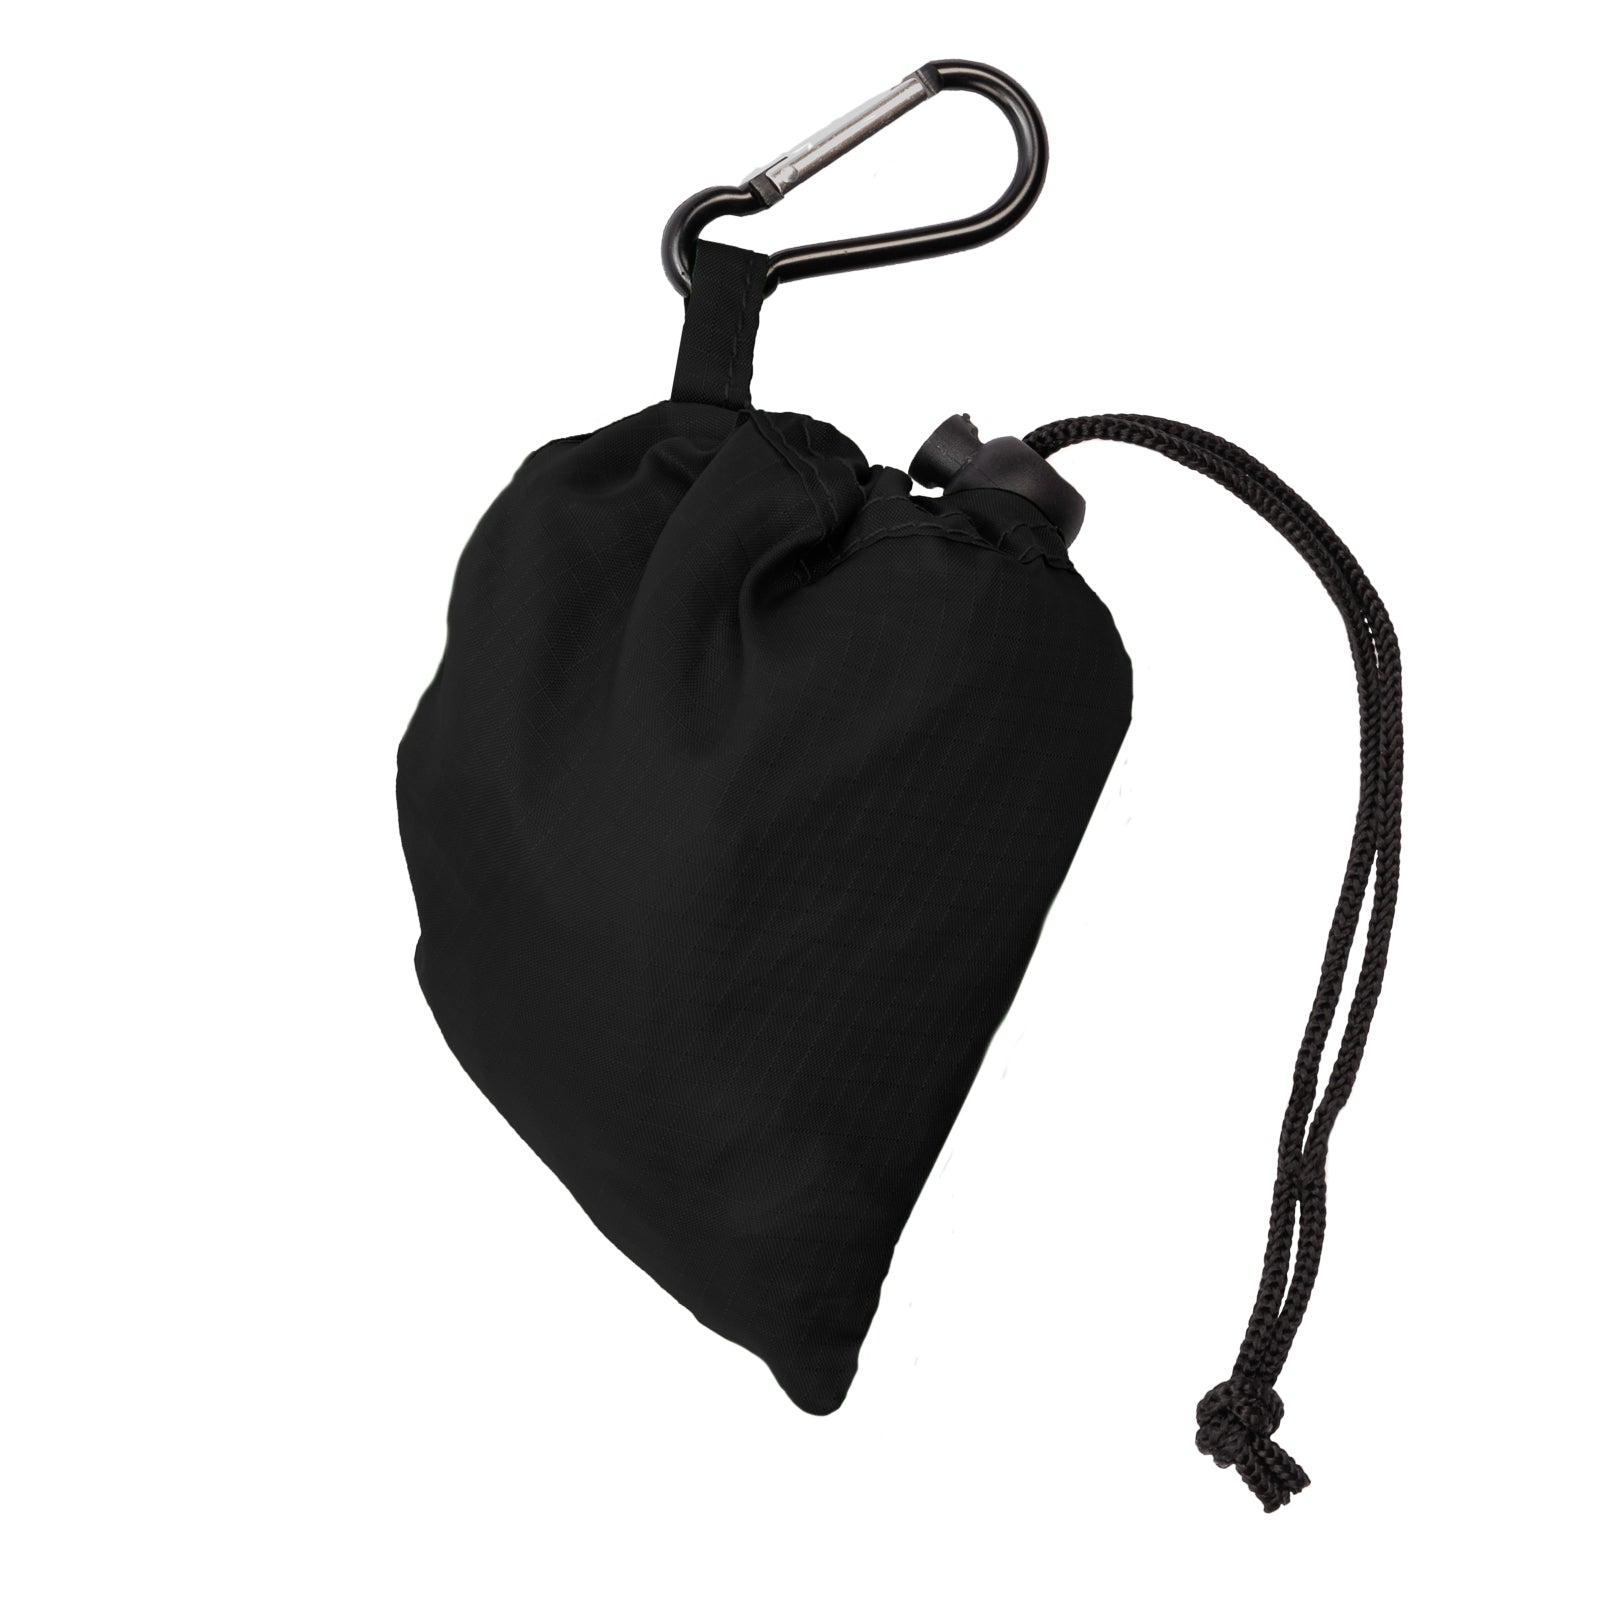 Accessory - Reusable Grocery Bags | Foldable W/ Integrated String Pouch | Ripstop Nylon Tote | Bulk